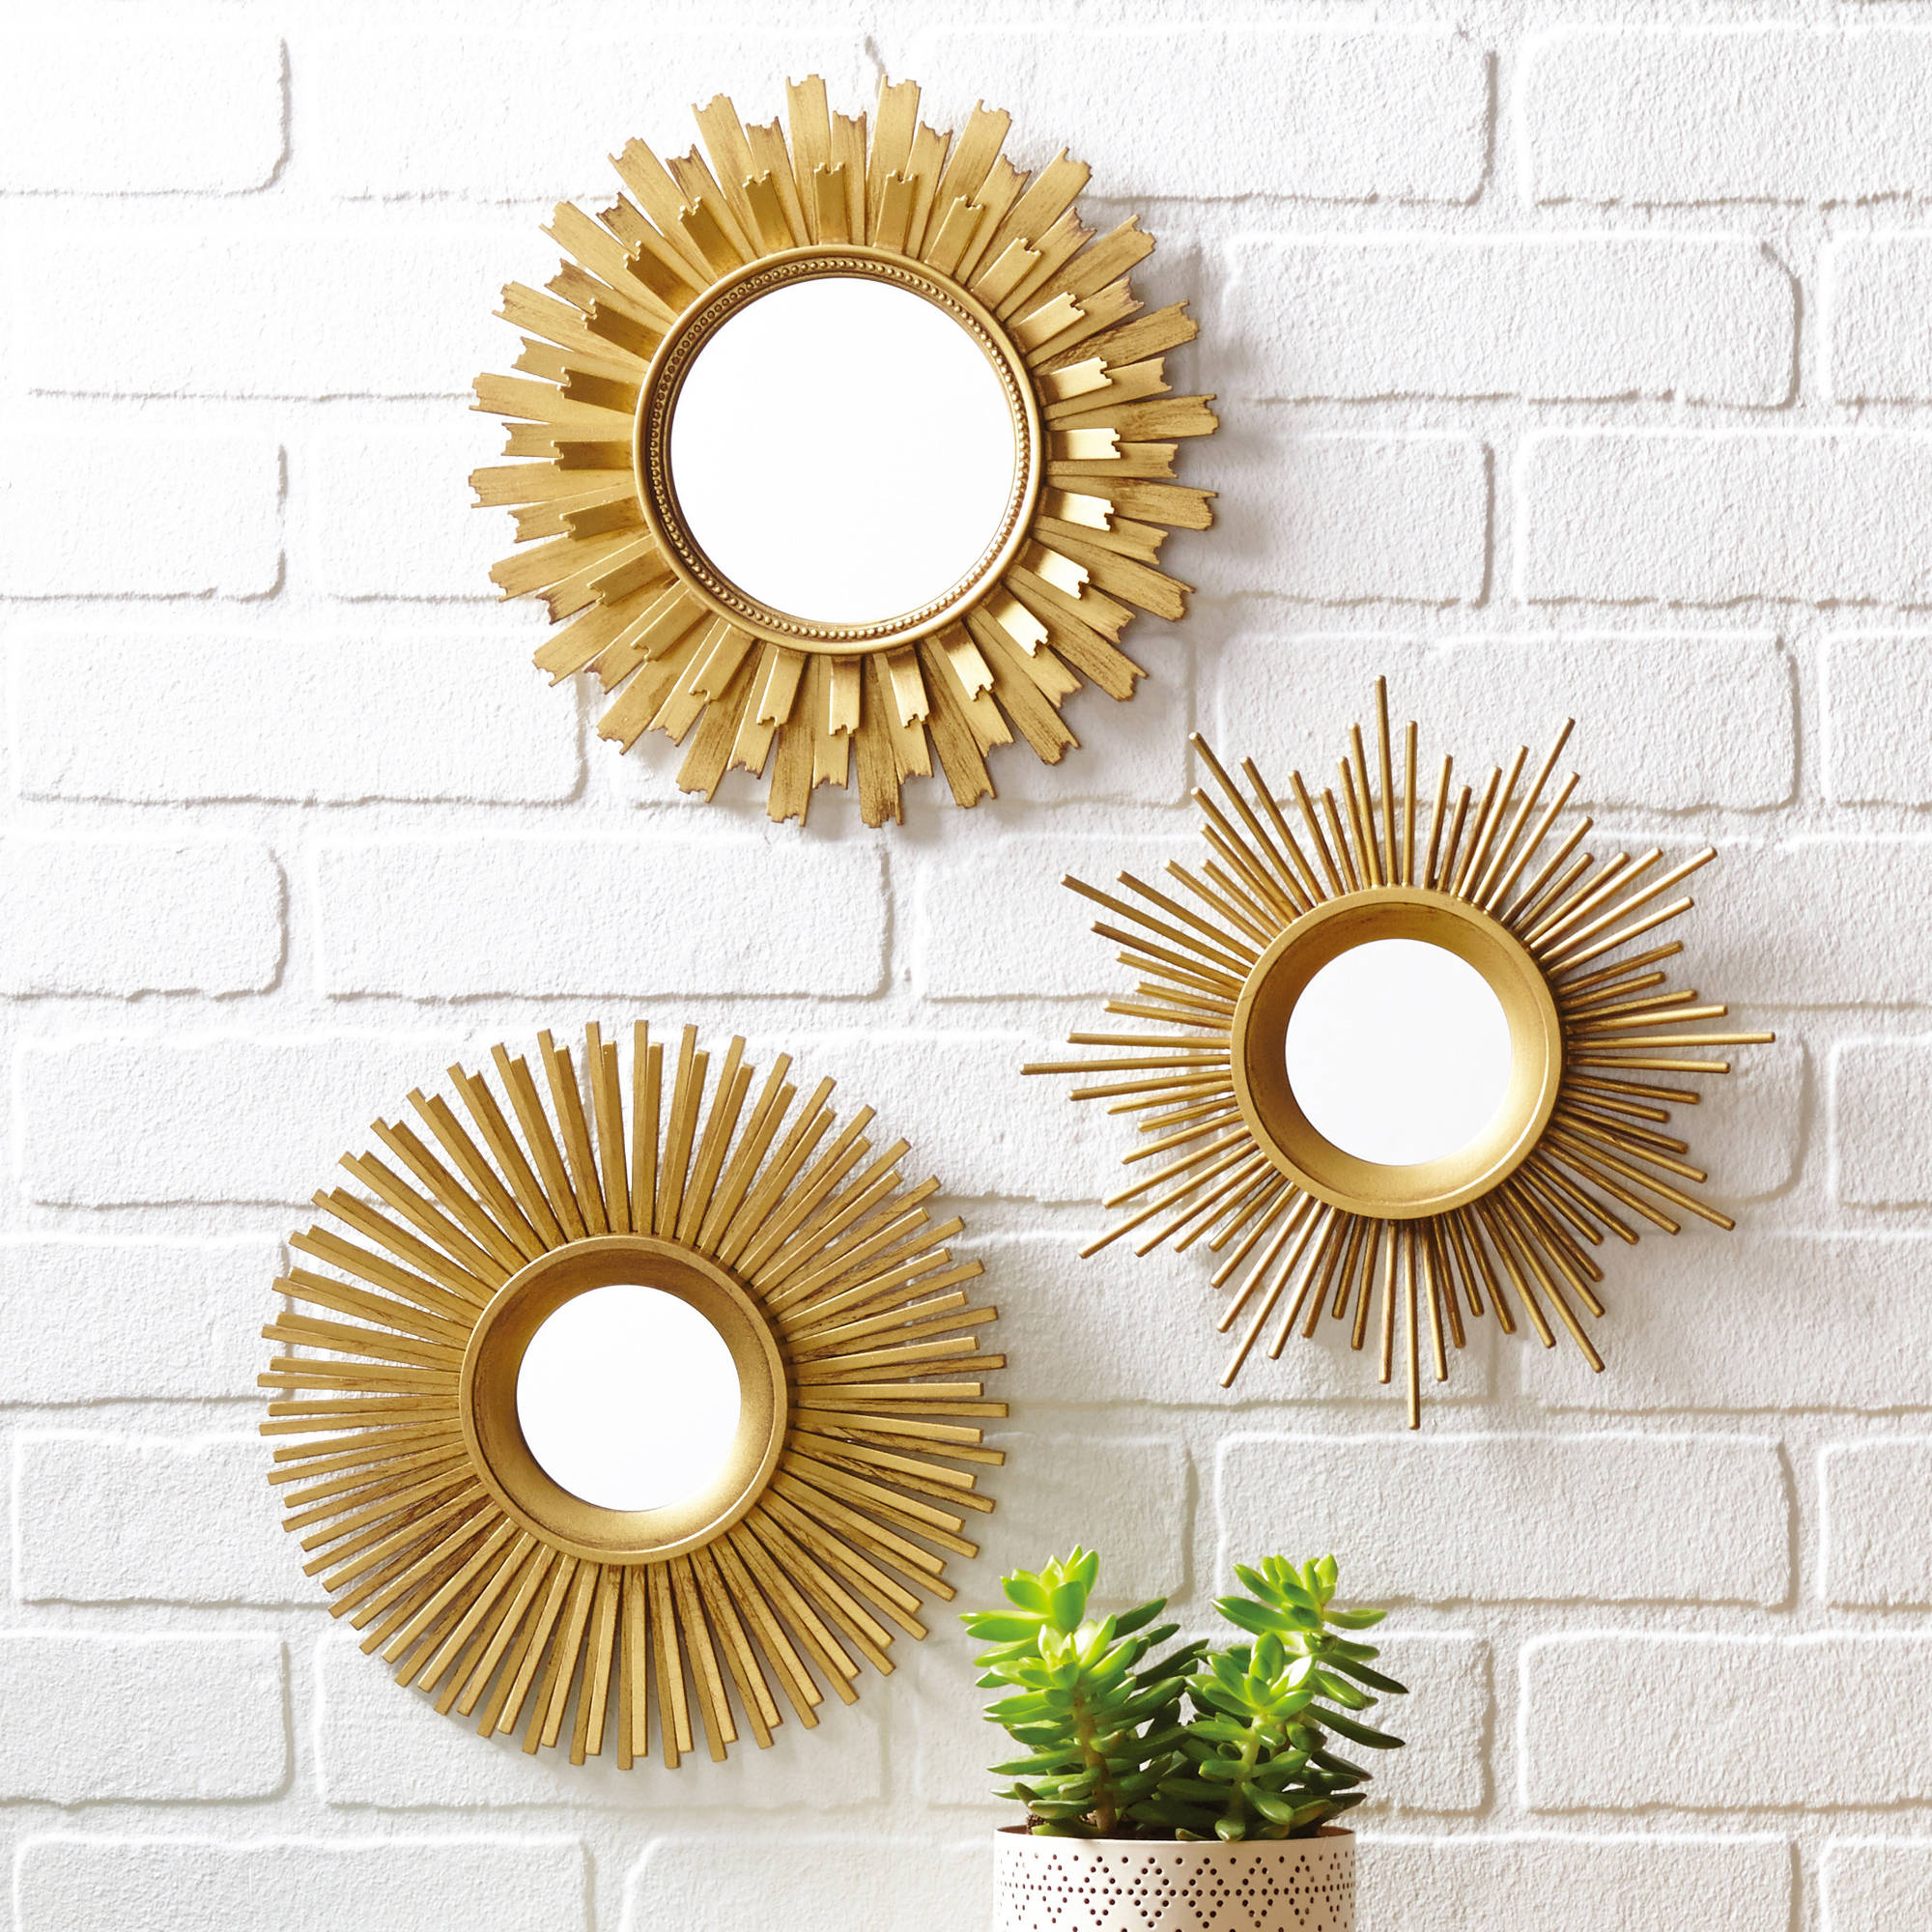 Newest Decorating Wall Mirrors With Decor Lanka Mirror Designs Kohls Pictures Wall Bathroom La For Diy (View 15 of 20)